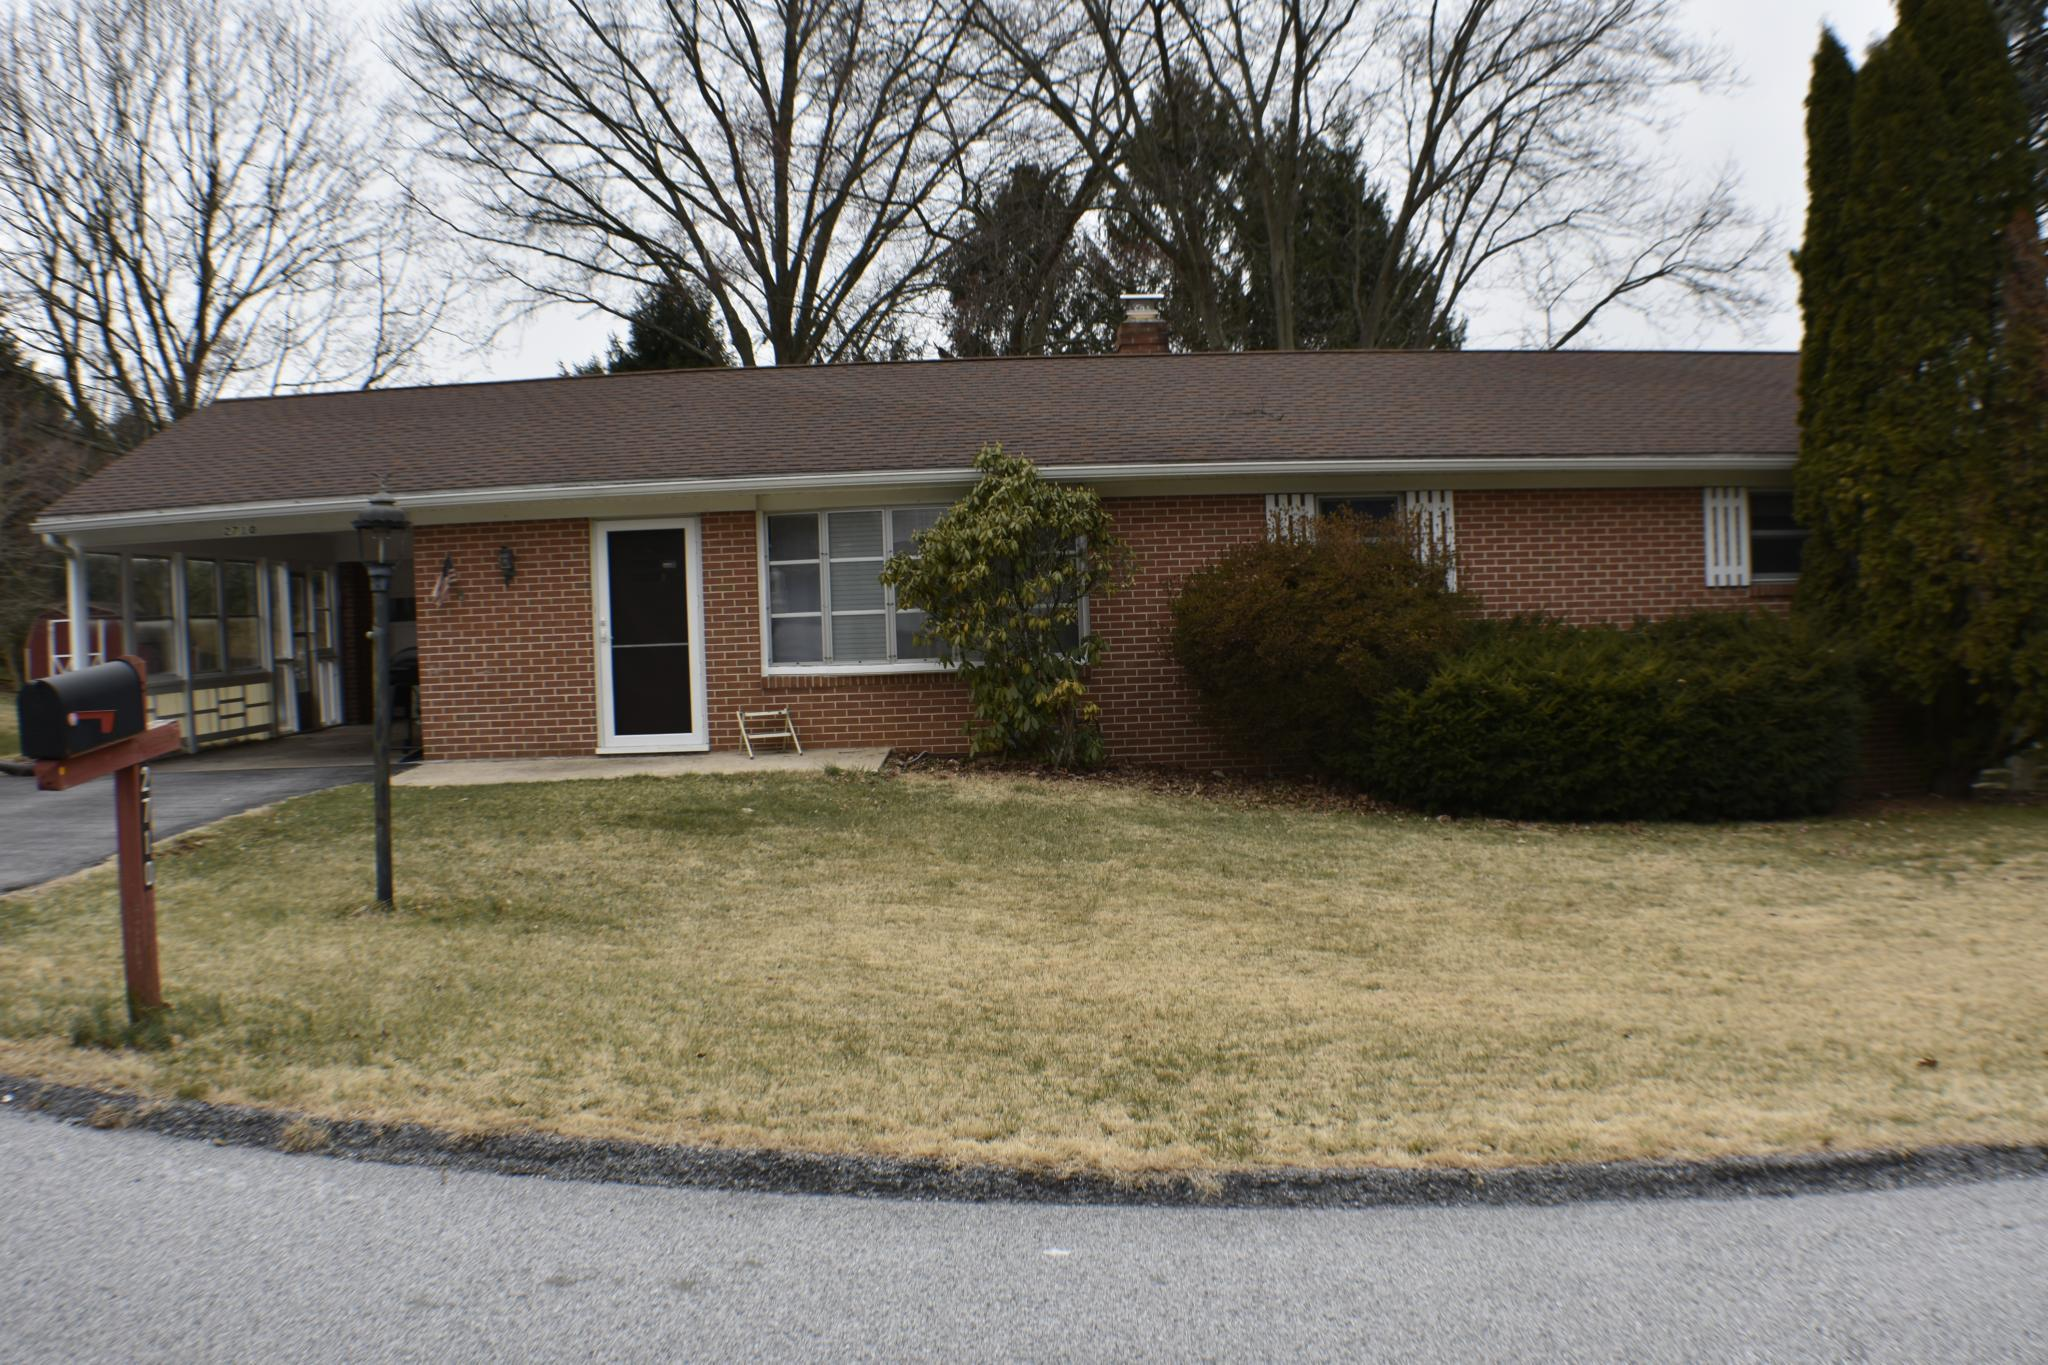 2710 Whitney Dr, York, PA 17402 For Rent | Trulia